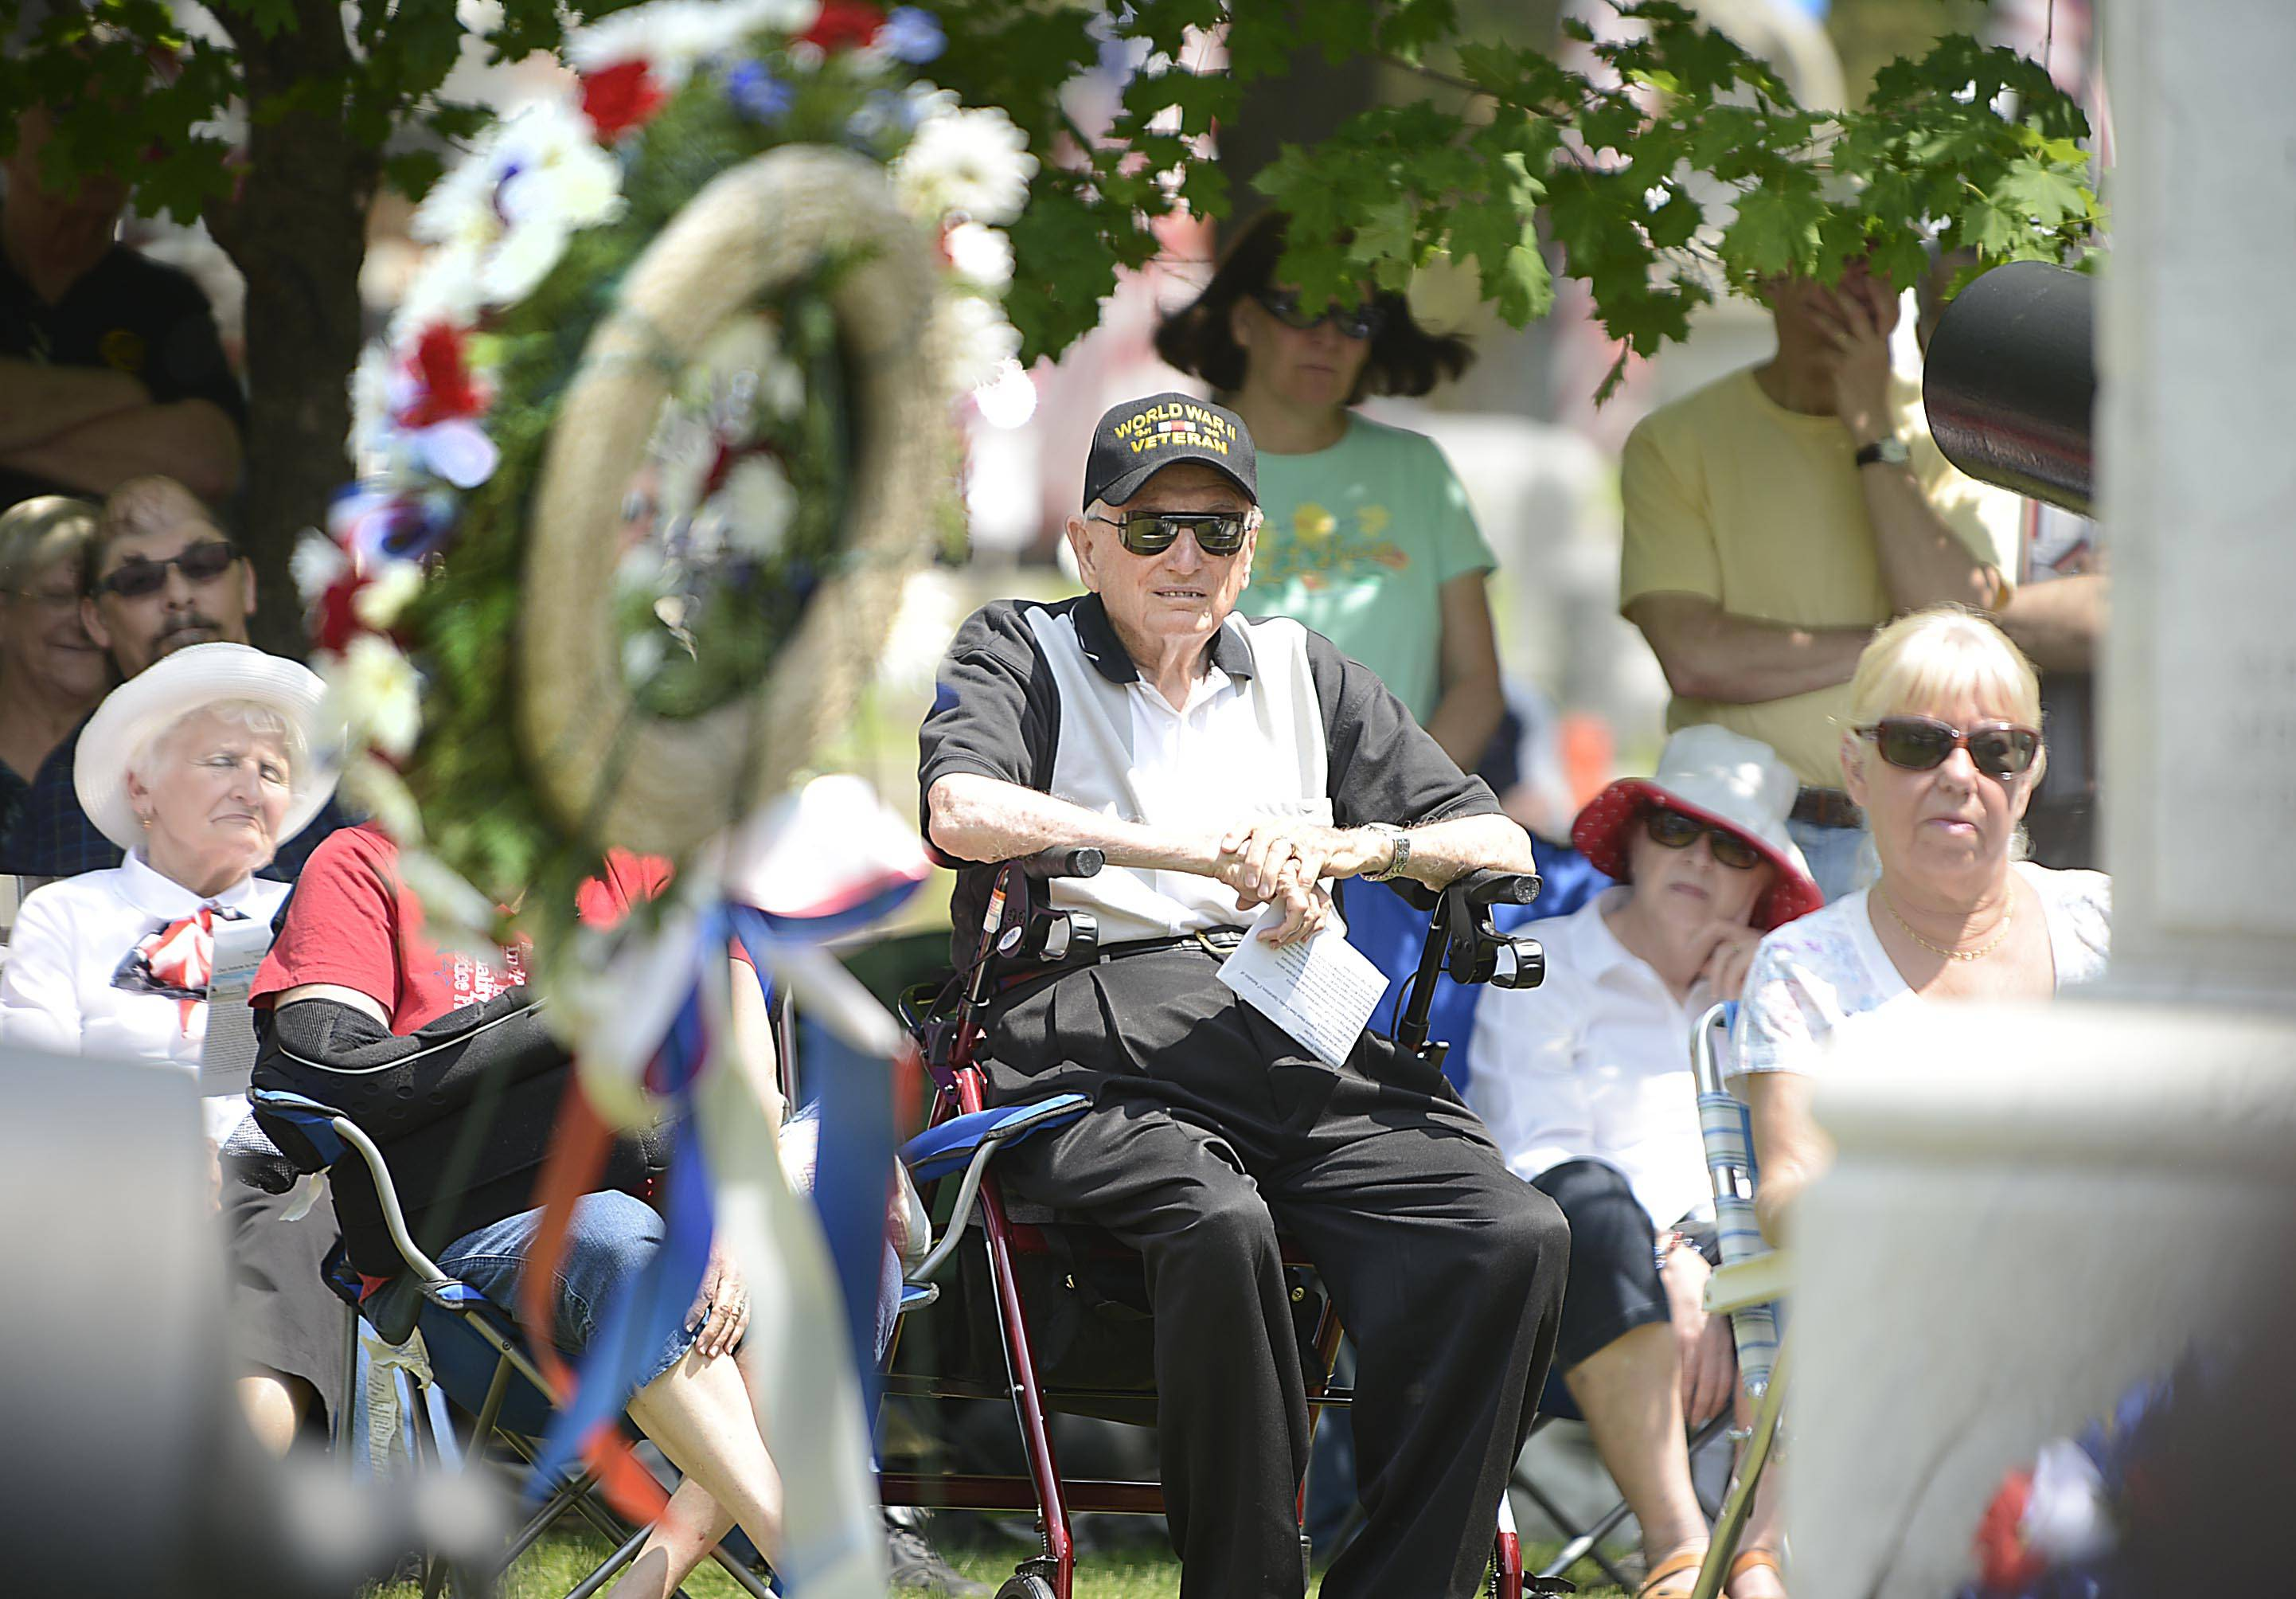 Howard Bedell watches the Elgin Memorial Day event at Bluff City Cemetery Monday. He is 94 years old and served three years in the Pacific during World War II. He lives in Elgin.